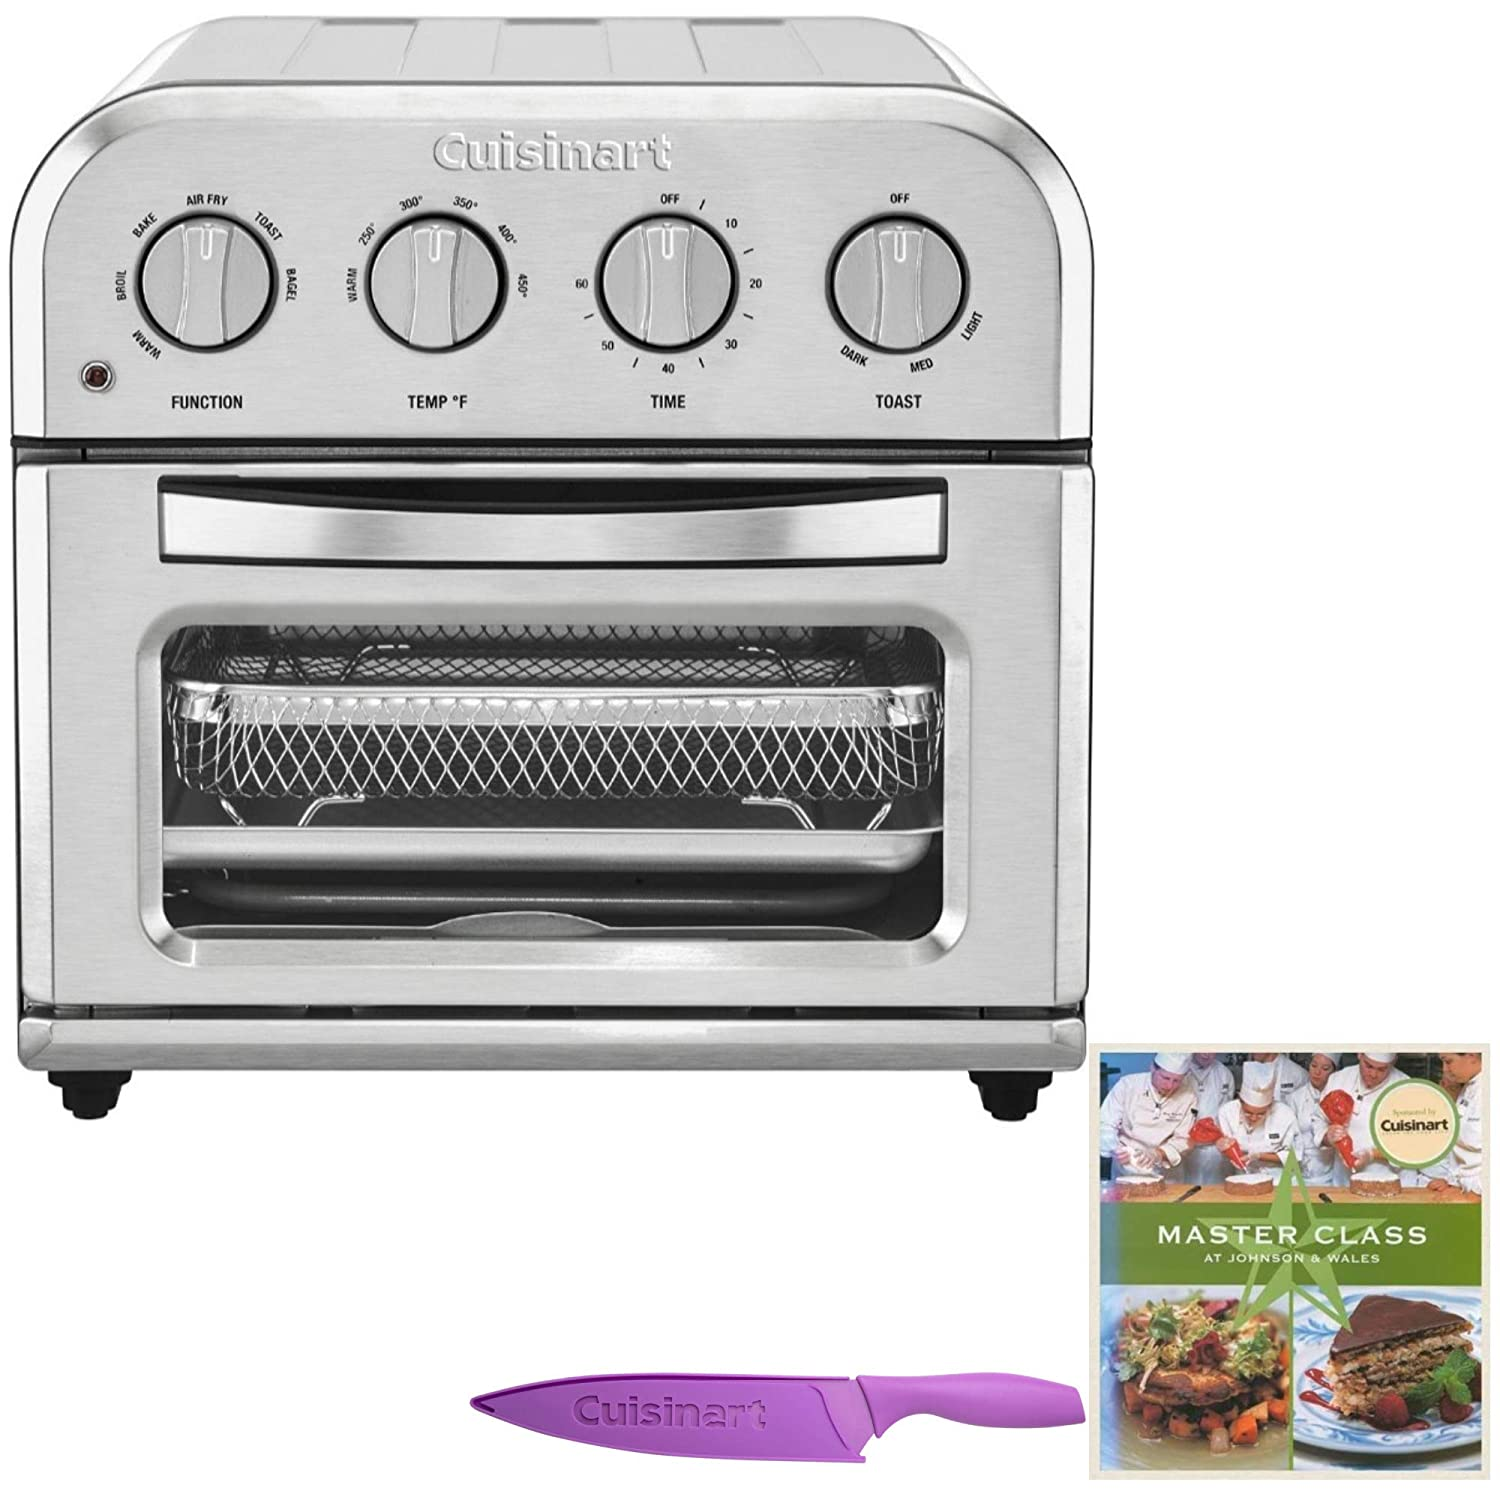 Cuisinart TOA-28 Compact AirFryer Toaster Oven Includes Knife and Cookbook Bundle (3 Items)